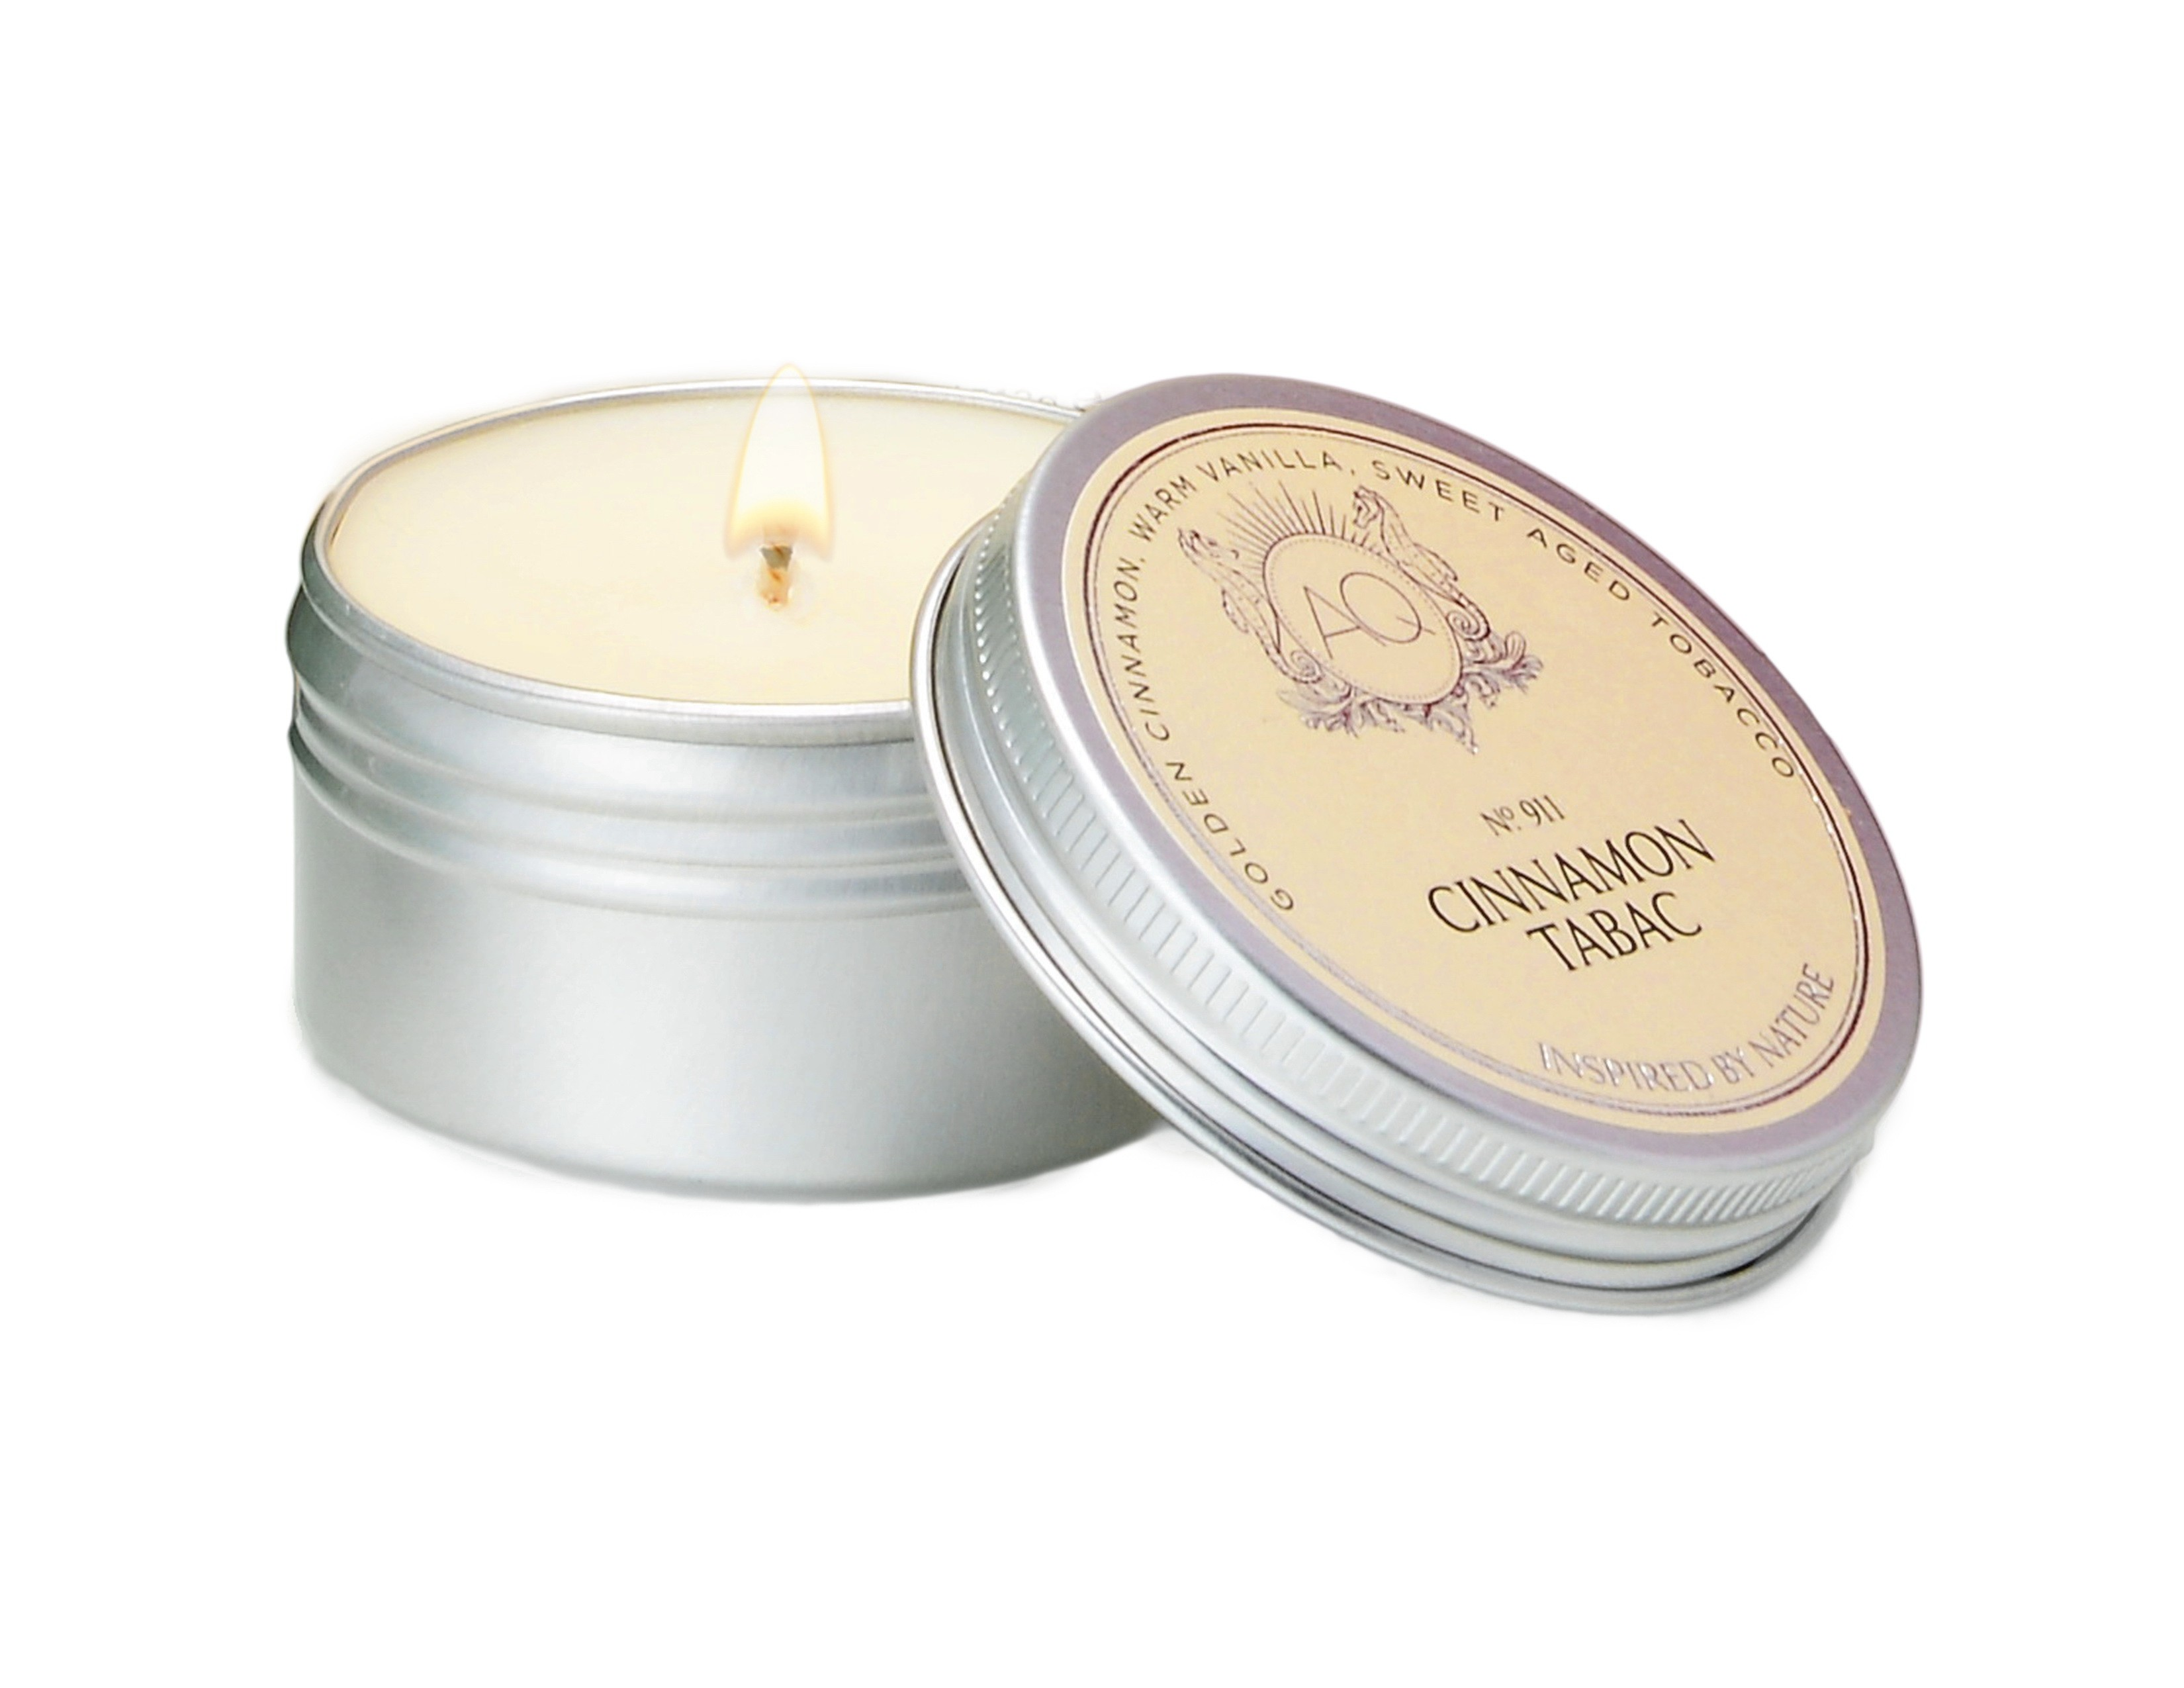 Aquiesse Cinnamon Tabac Holiday Candle Travel Tin | James Anthony Collection